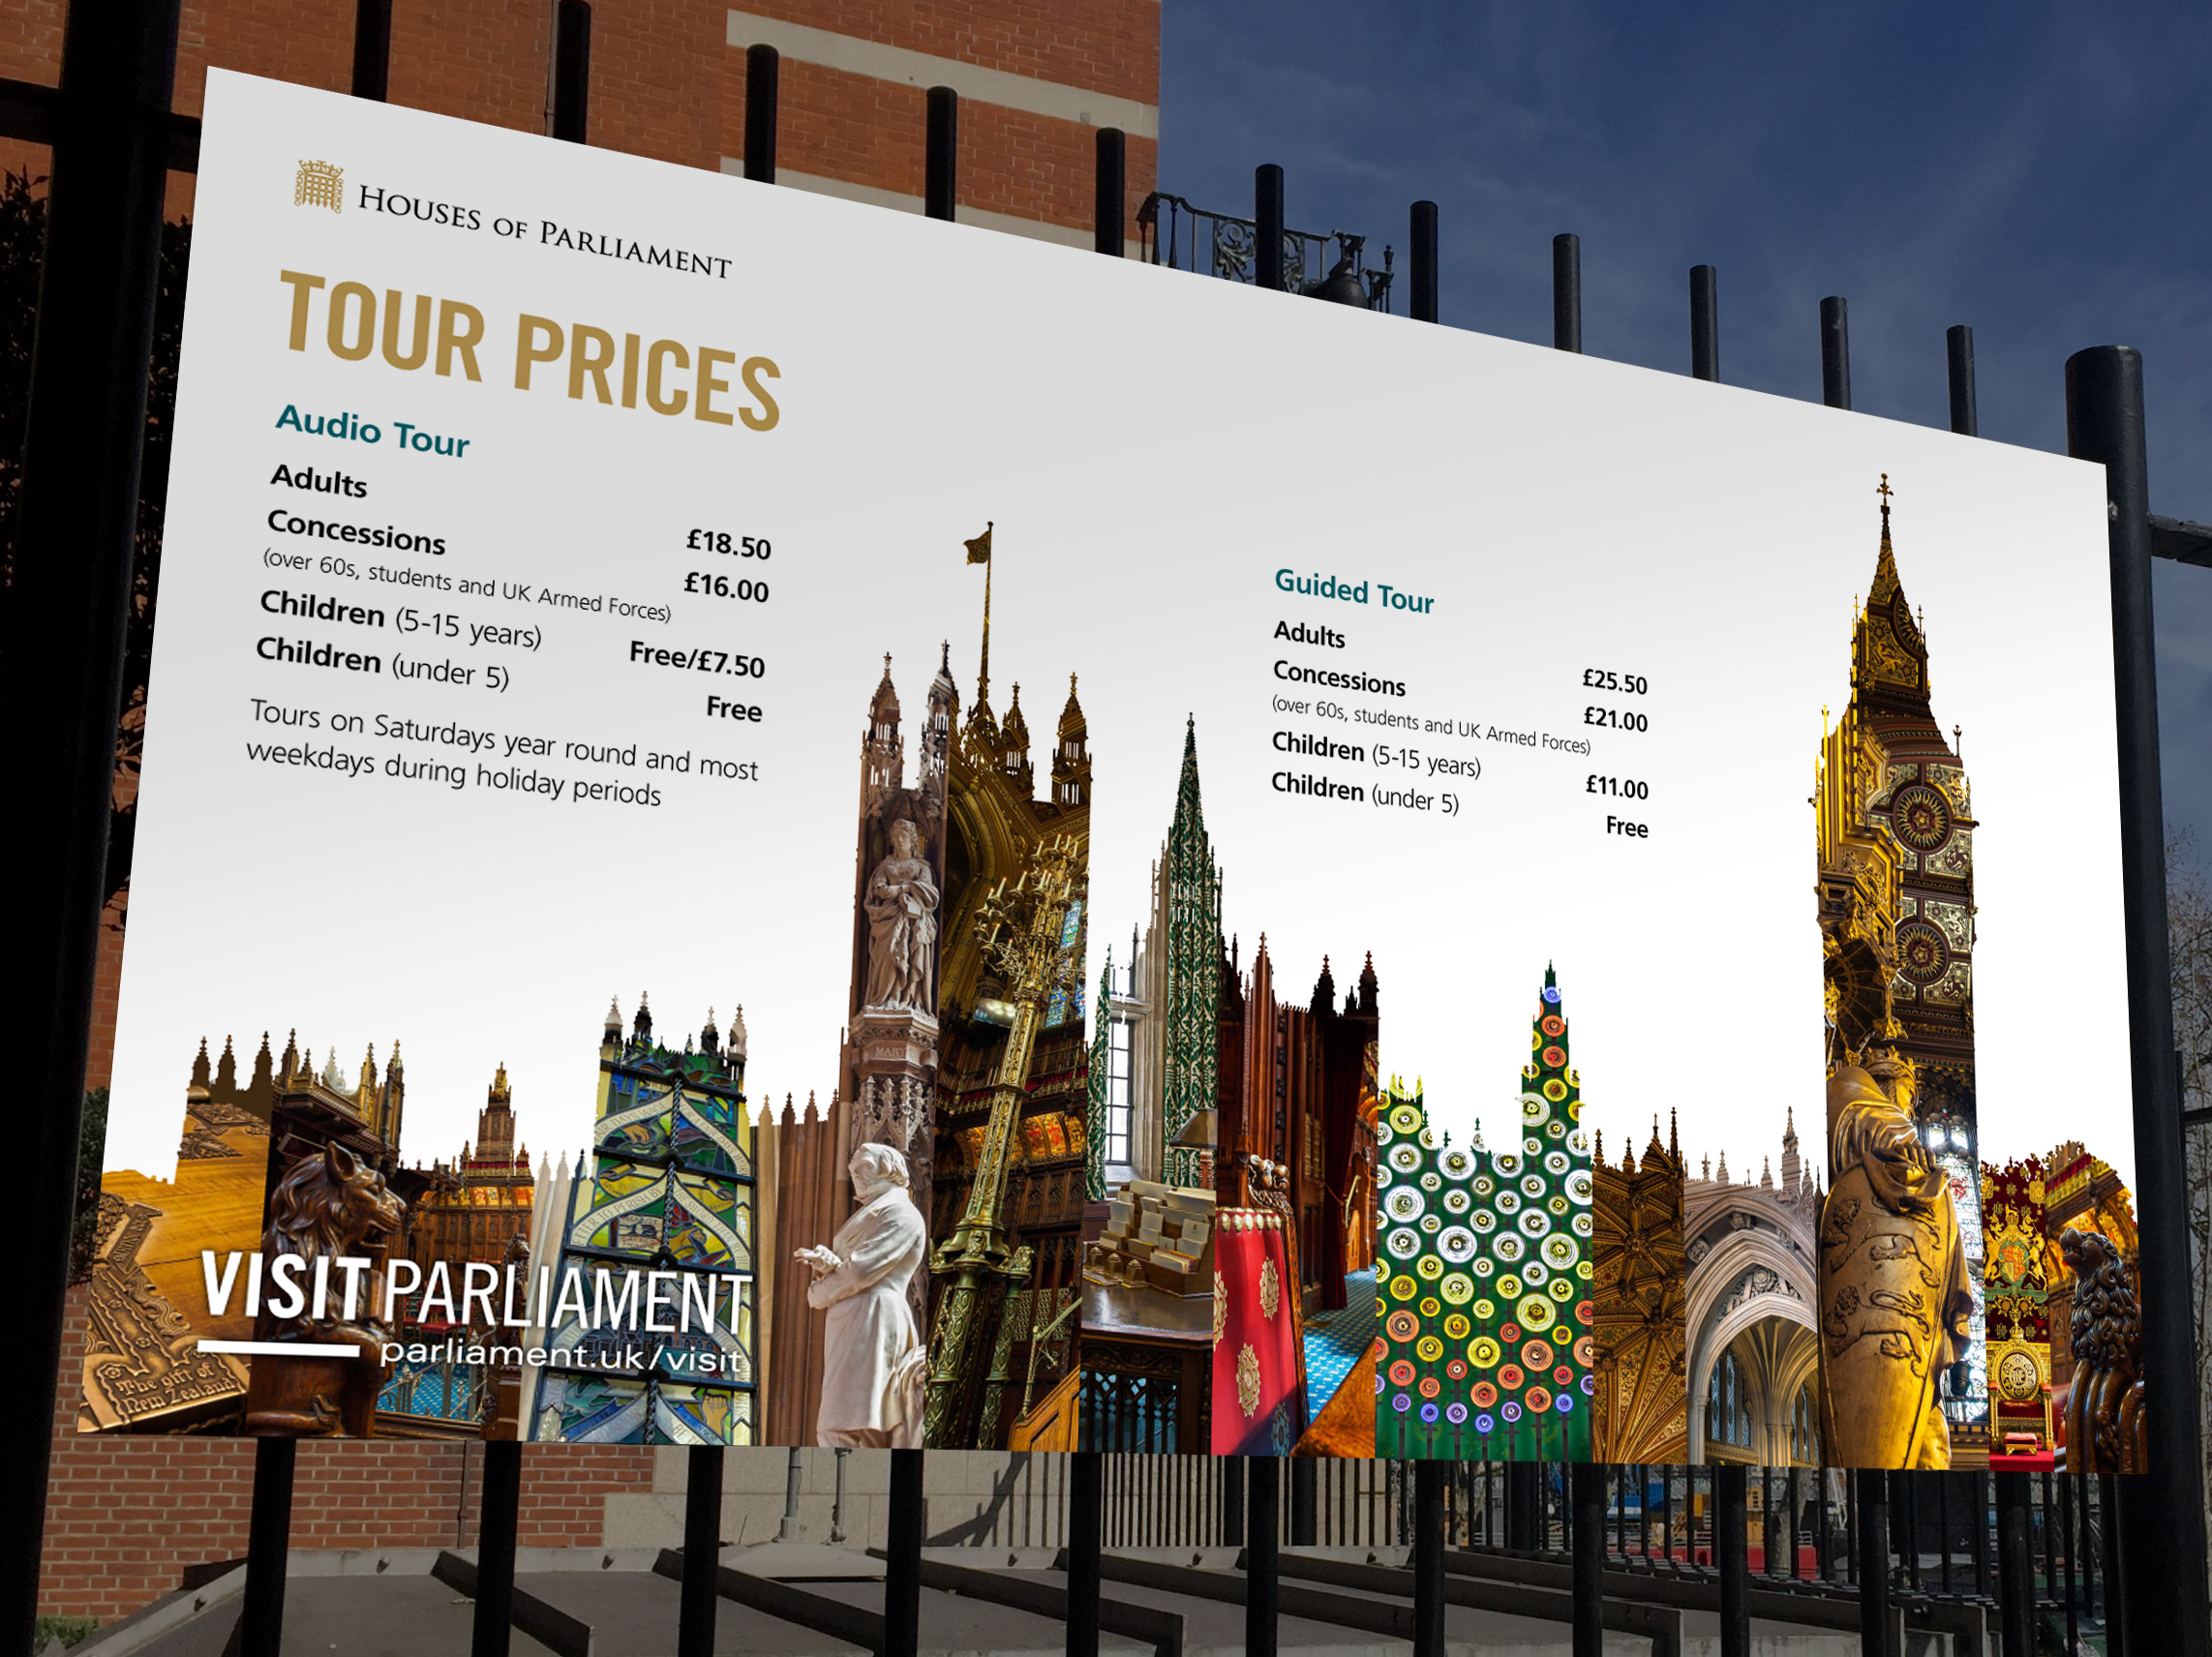 New Visit Parliament identity applied to Tour Price signage at Portcullis House